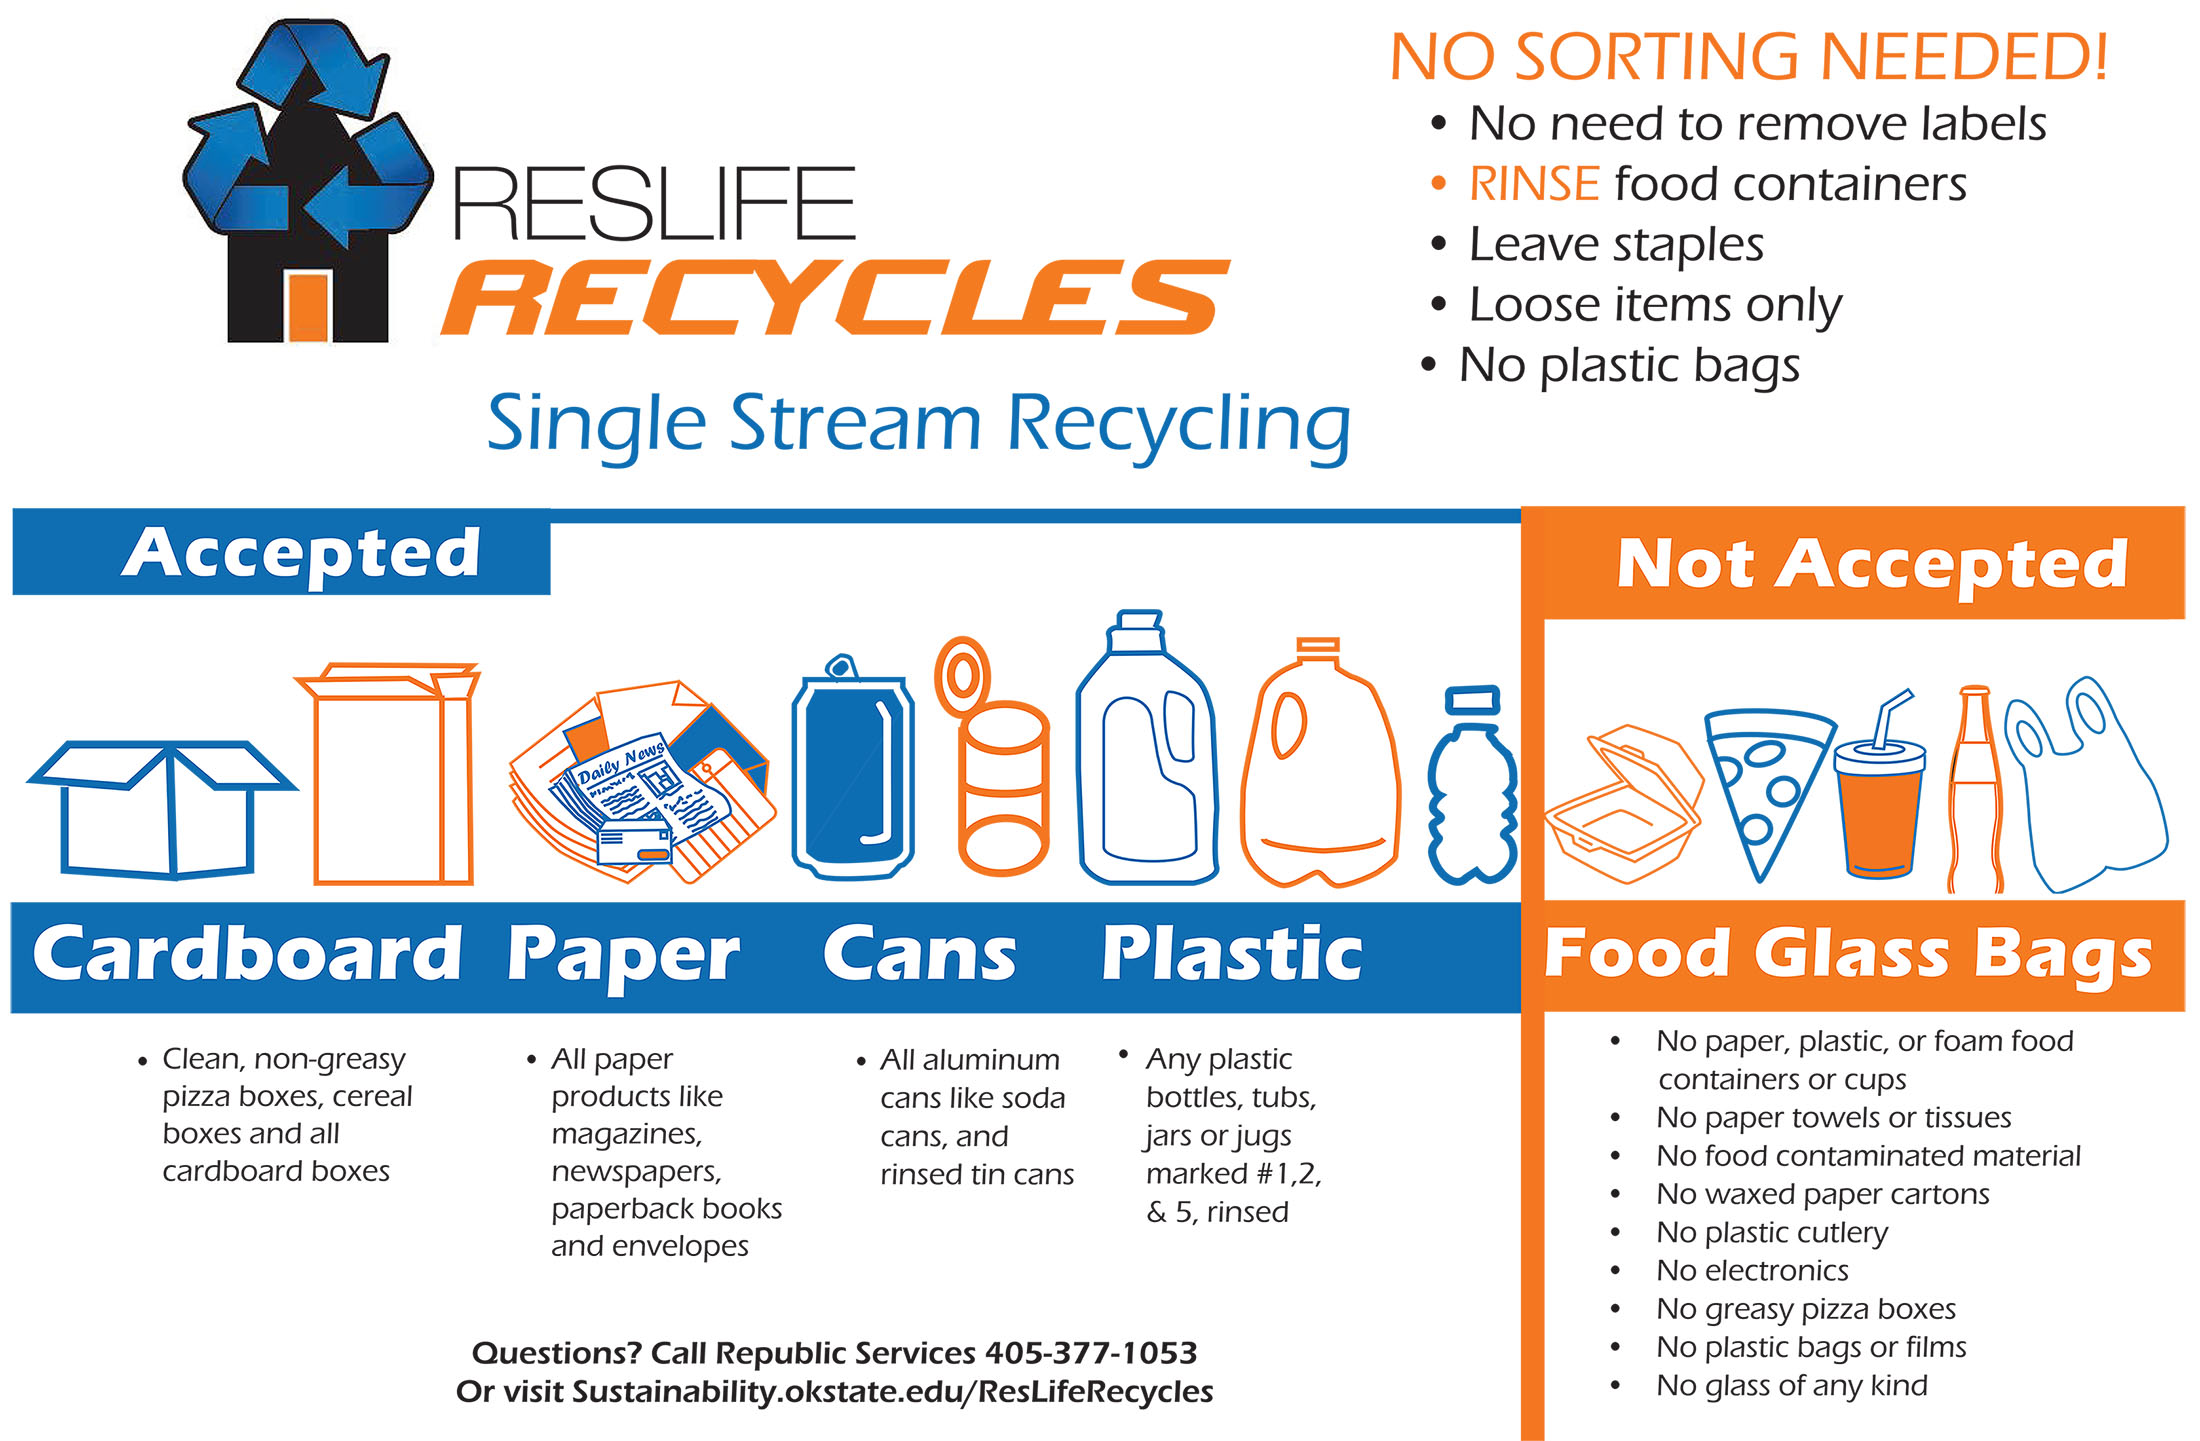 ResLife Recycles Accepted Materials